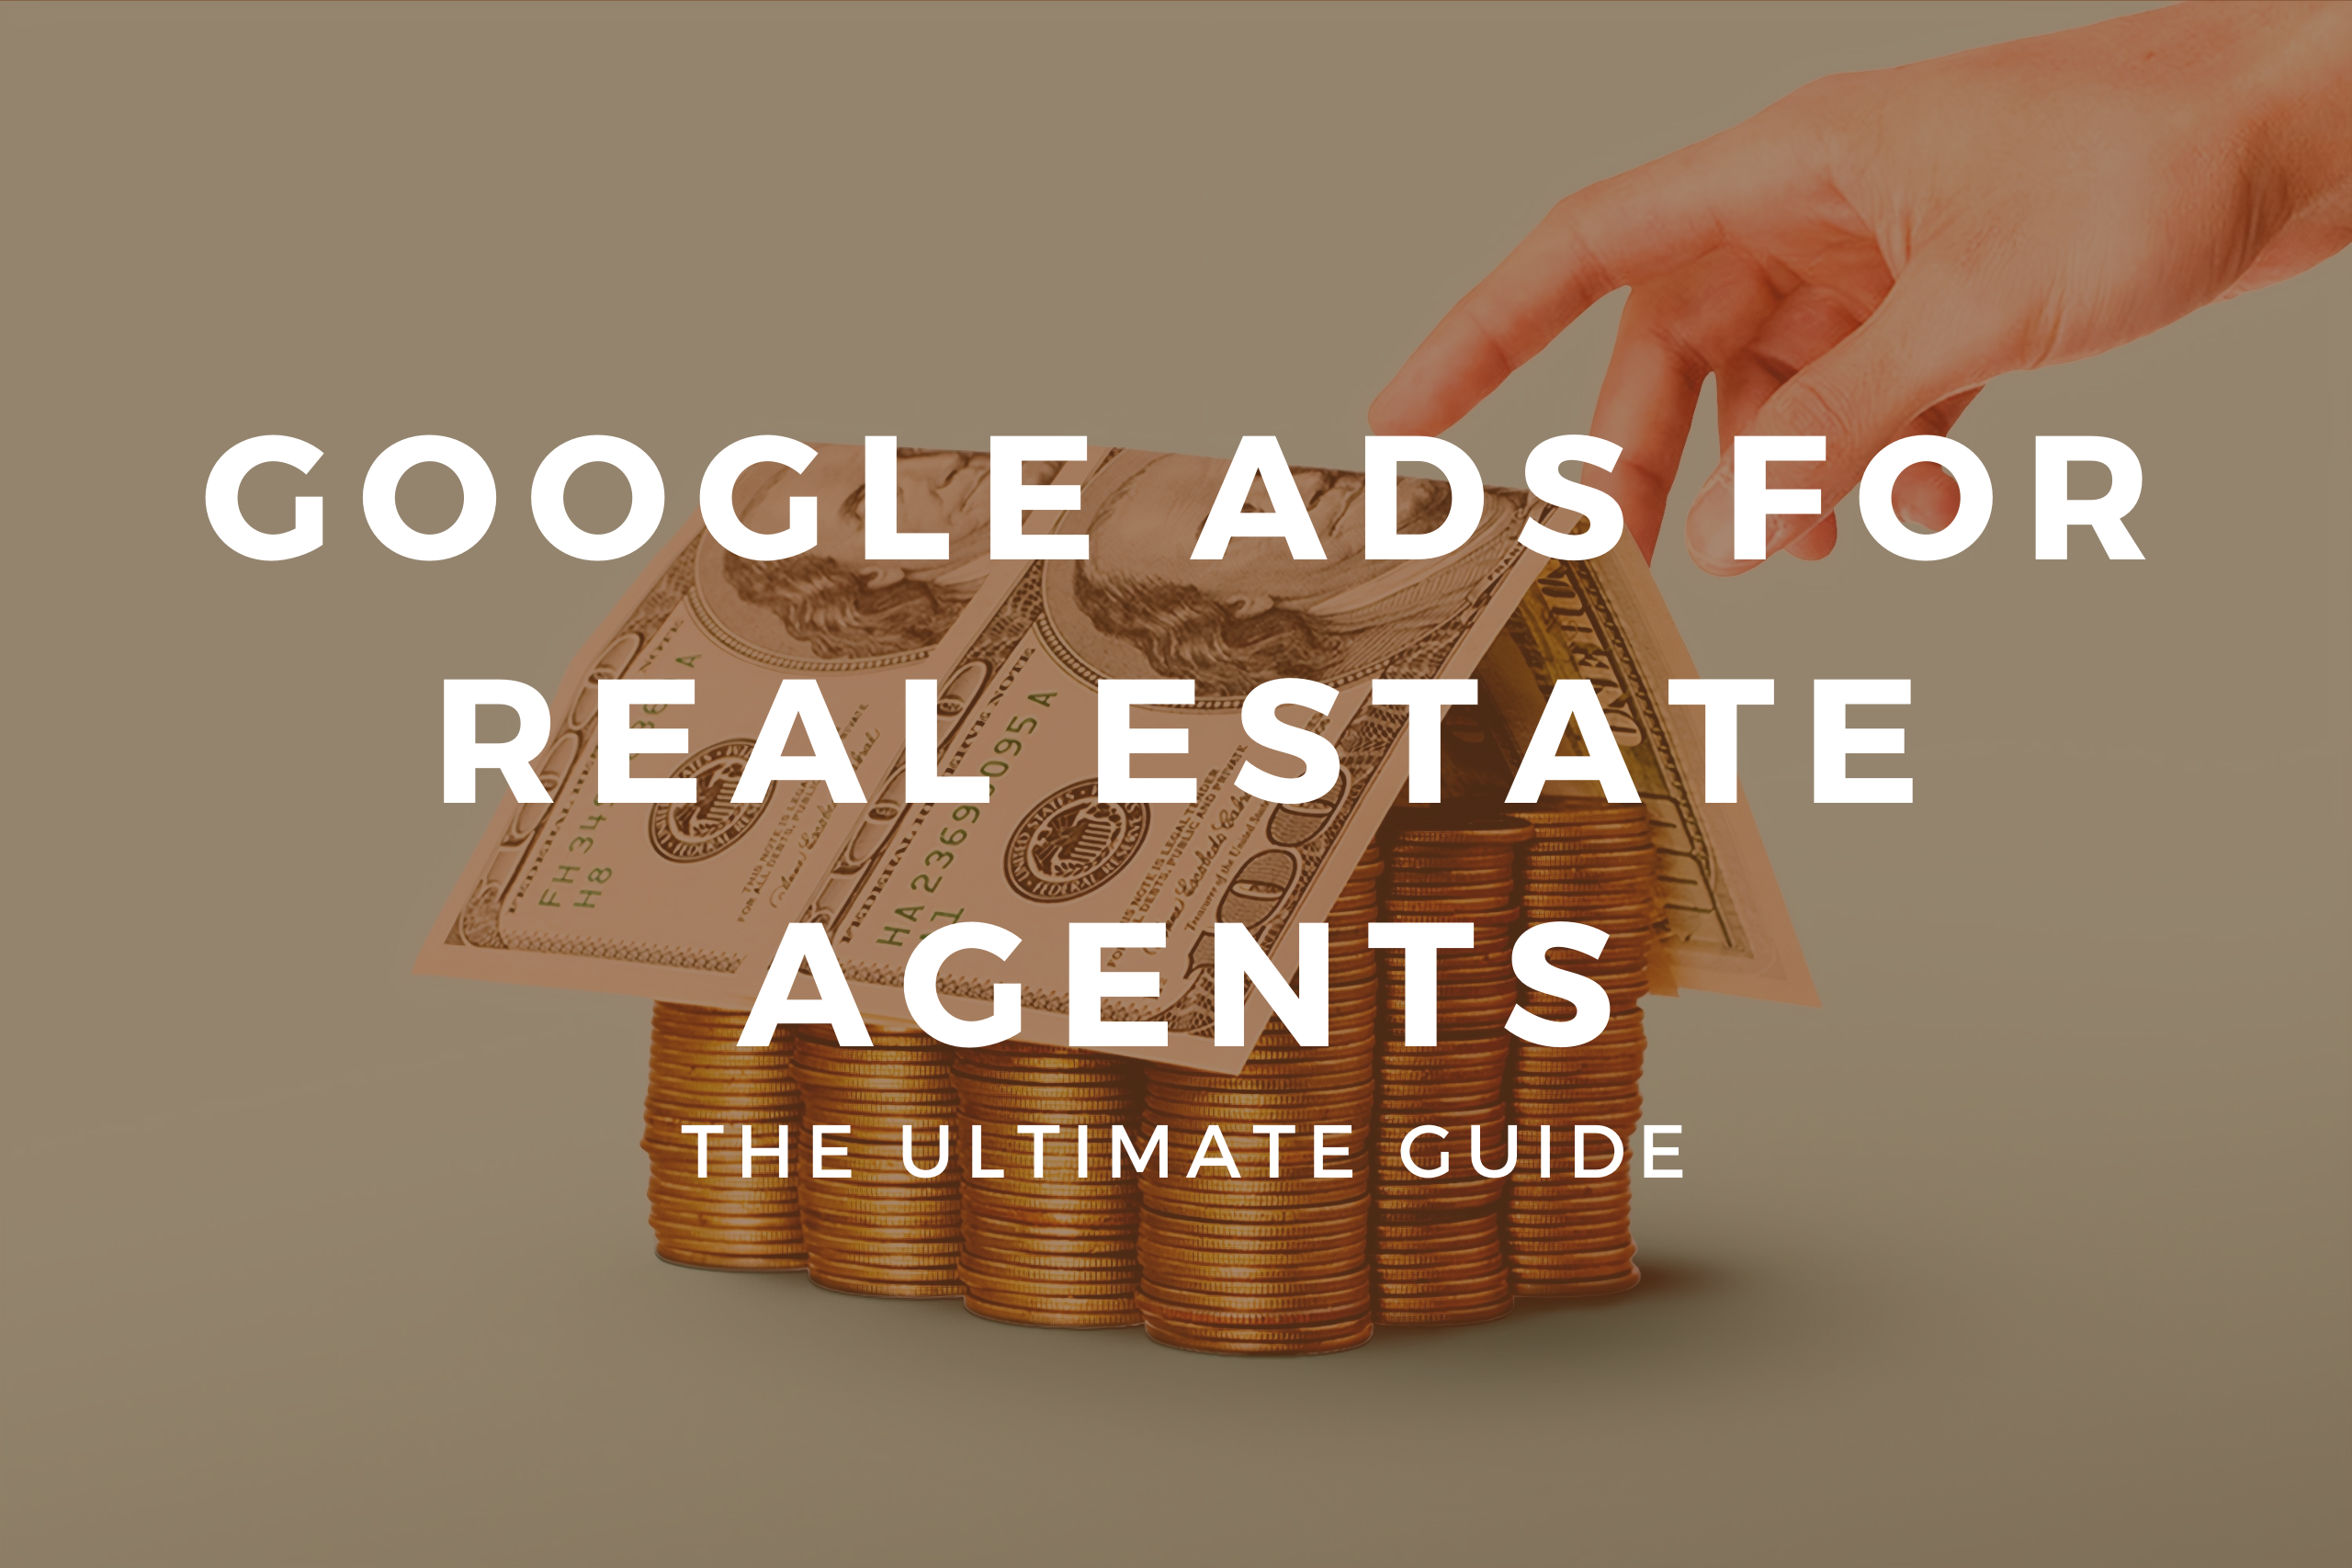 Google ads for real estate agents